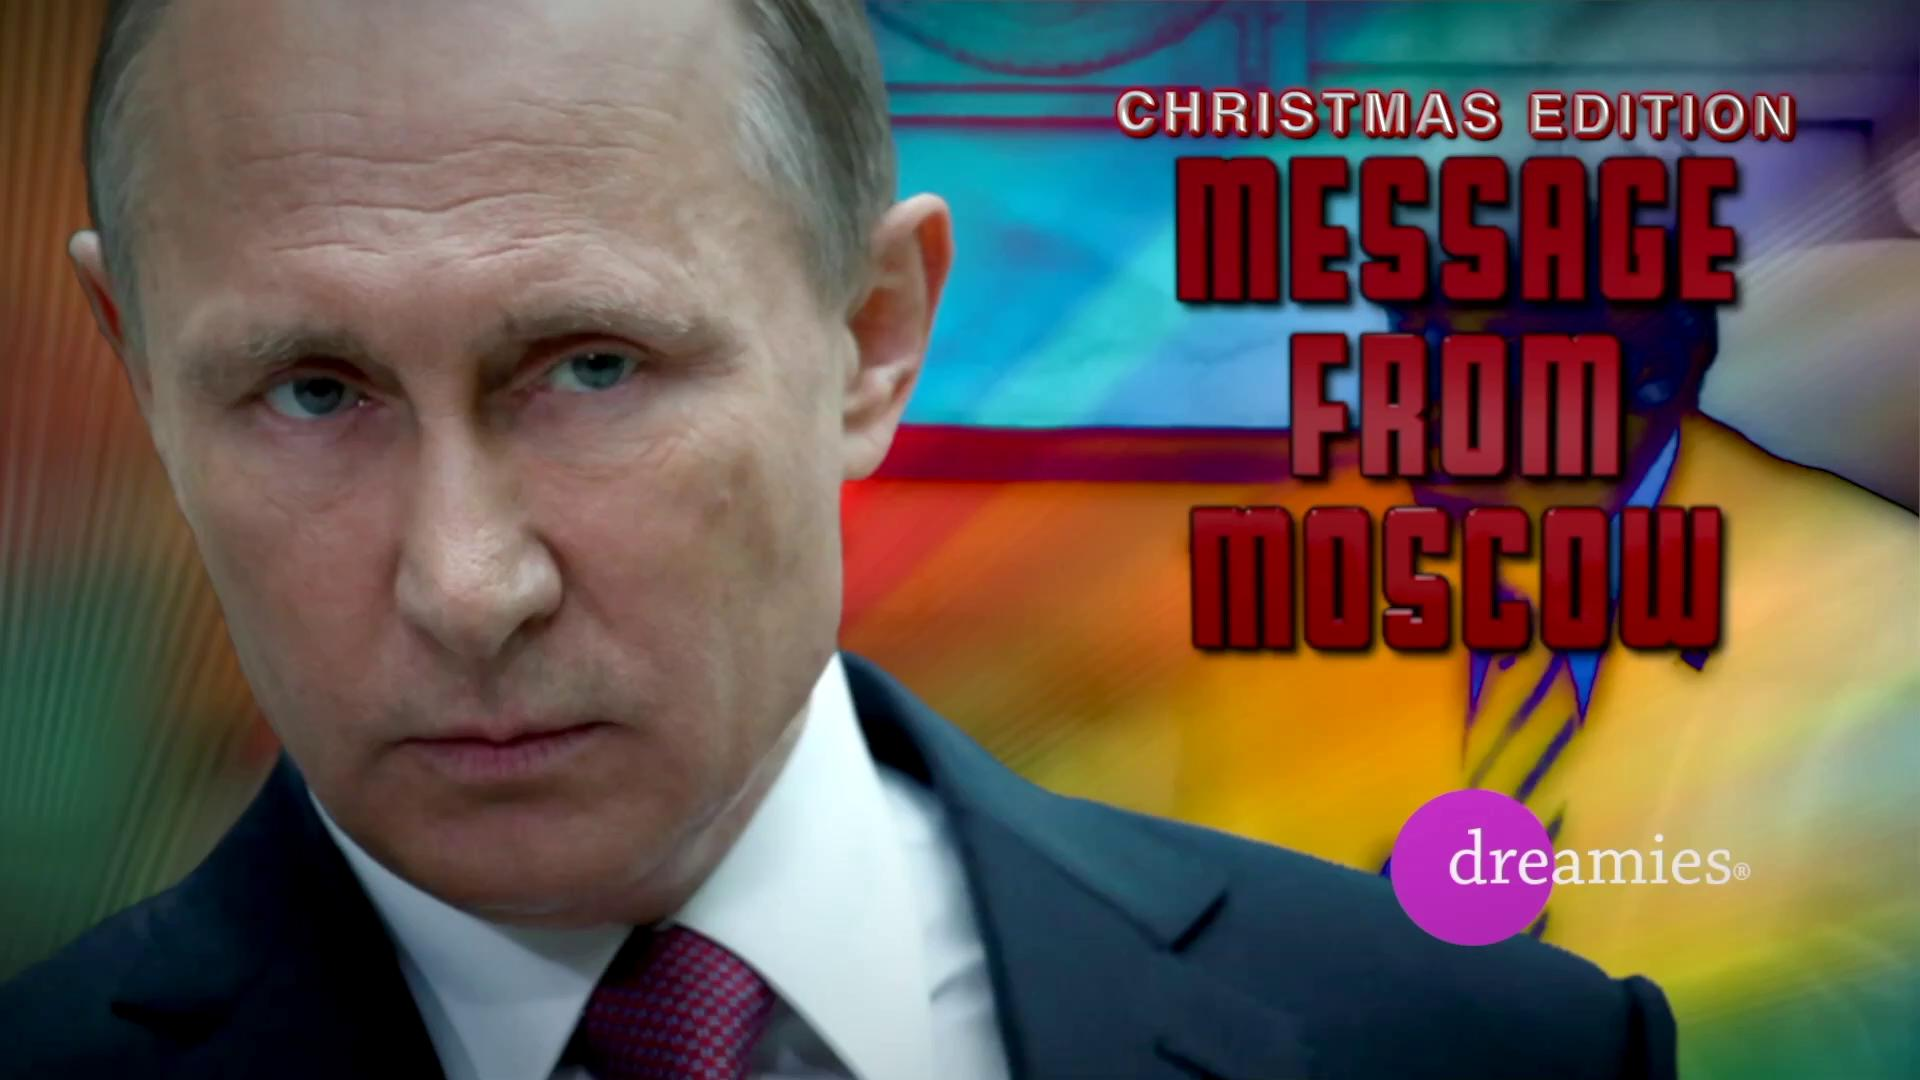 MESSAGEFROMMOSCOW